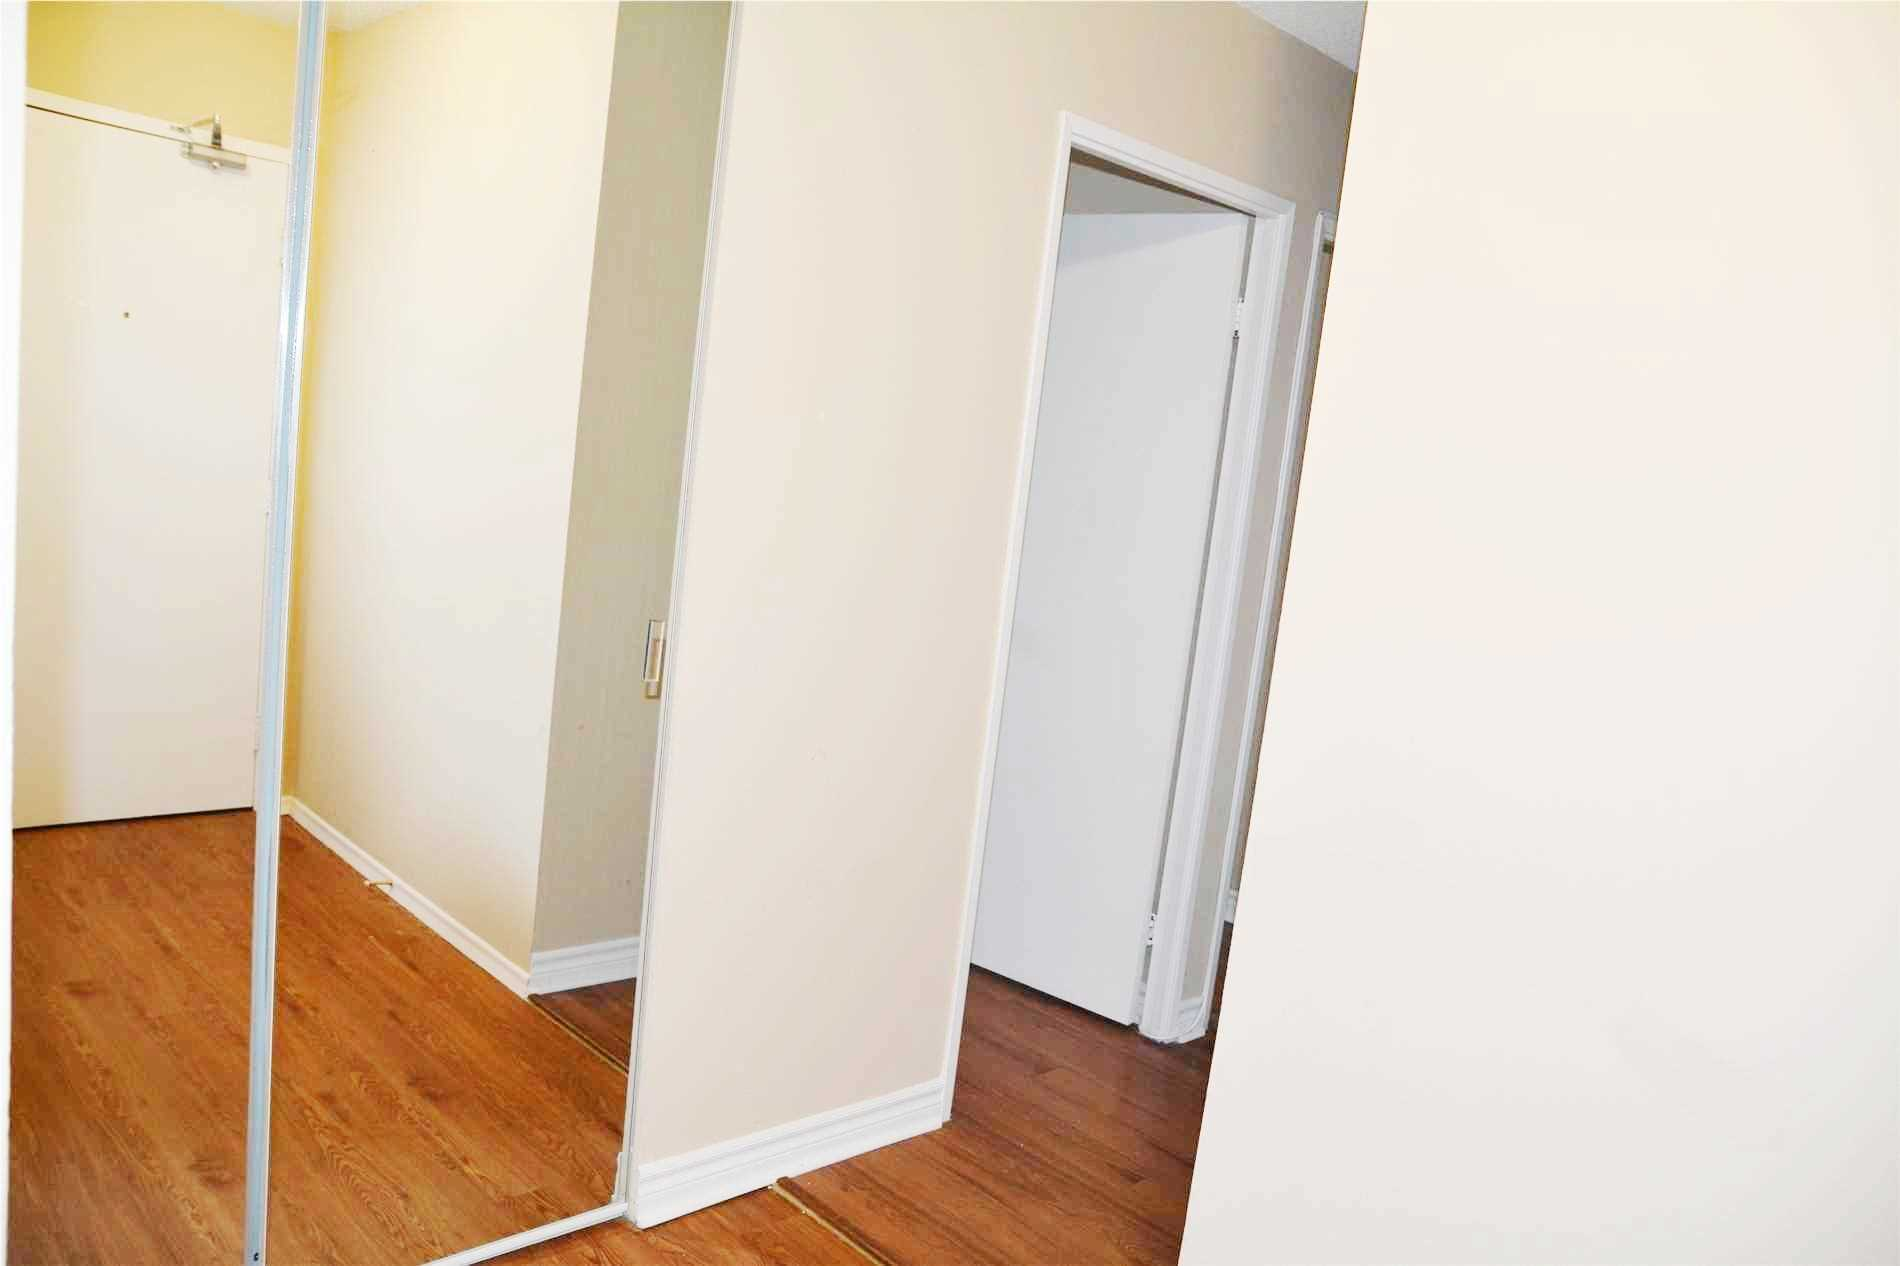 Image 14 of 14 showing inside of 3 Bedroom Condo Apt Apartment for Lease at 205 Hilda Ave Unit# 2104, Toronto M2M4B1